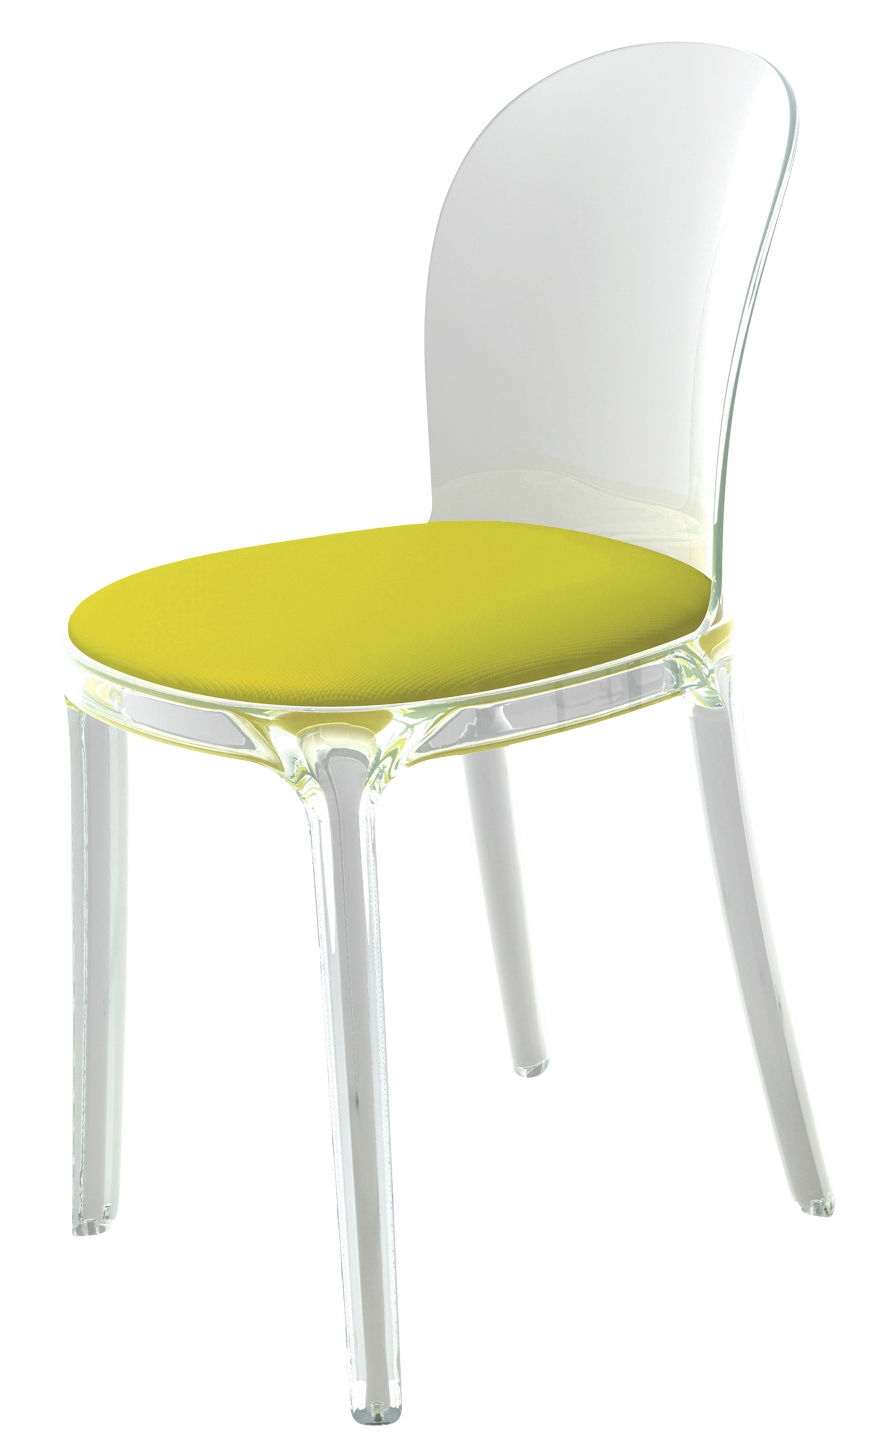 Furniture - Chairs - Vanity Chair Padded chair - Transparent polycarbonate & fabric by Magis - Clear / Yellow - Fabric, Polycarbonate